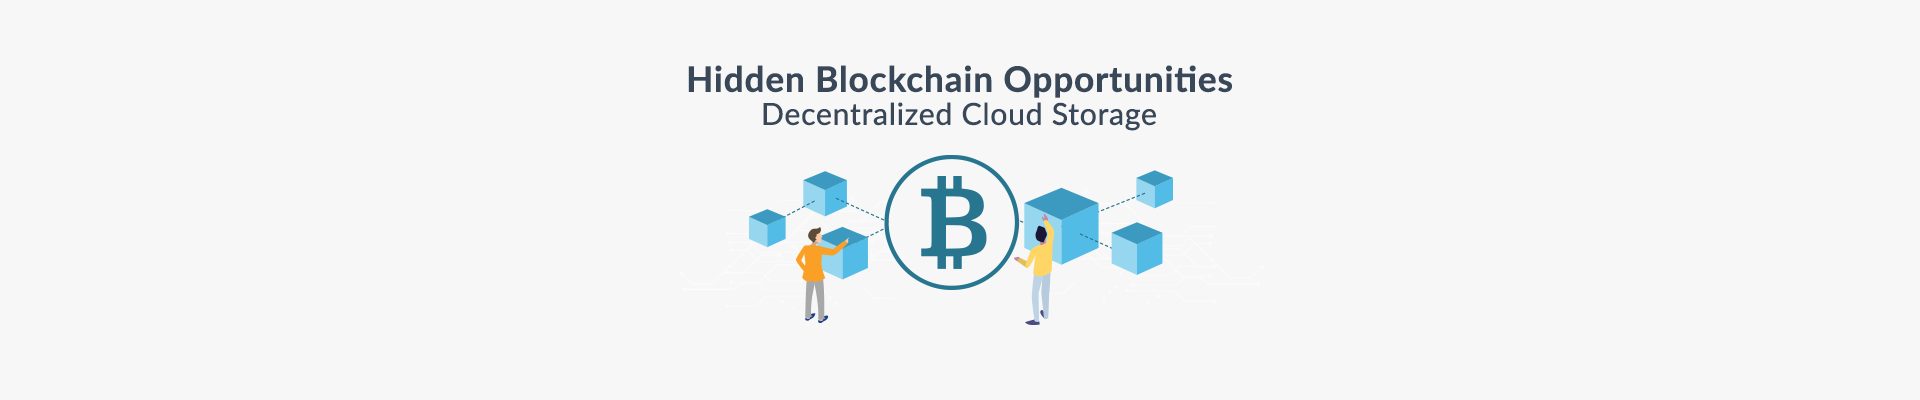 Hidden Blockchain Opportunities - Decentralized Cloud Storage - Plesk